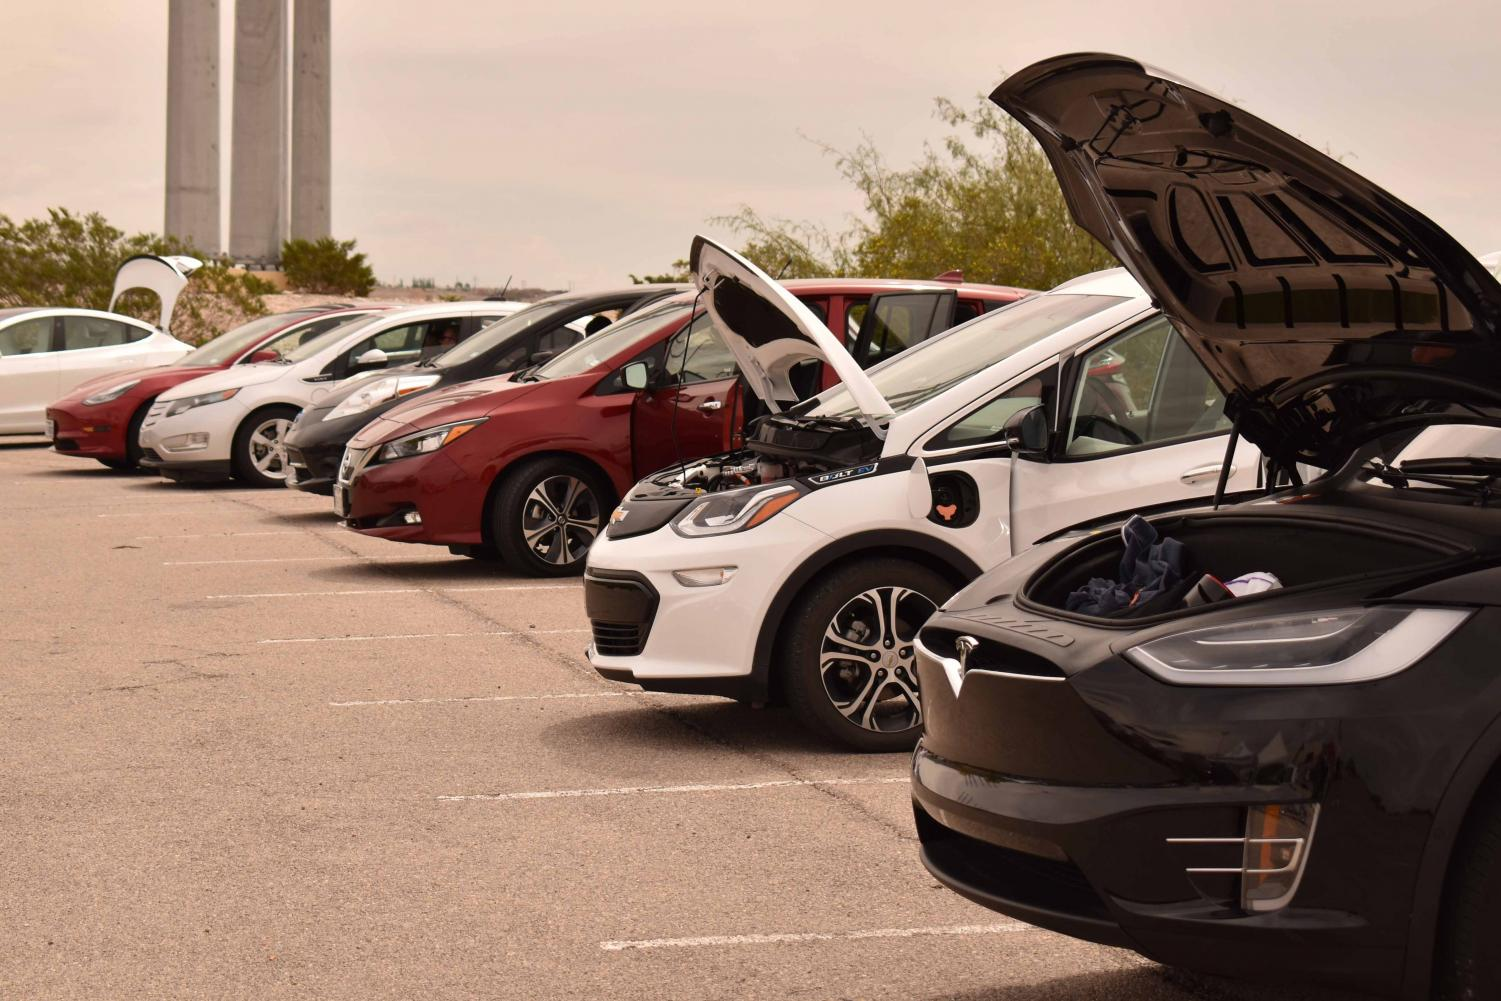 Eco El Paso hosts the city's first-ever National Drive Electric Festival Saturday, Sept. 15 at the Sunland Park Mall's south parking lot.